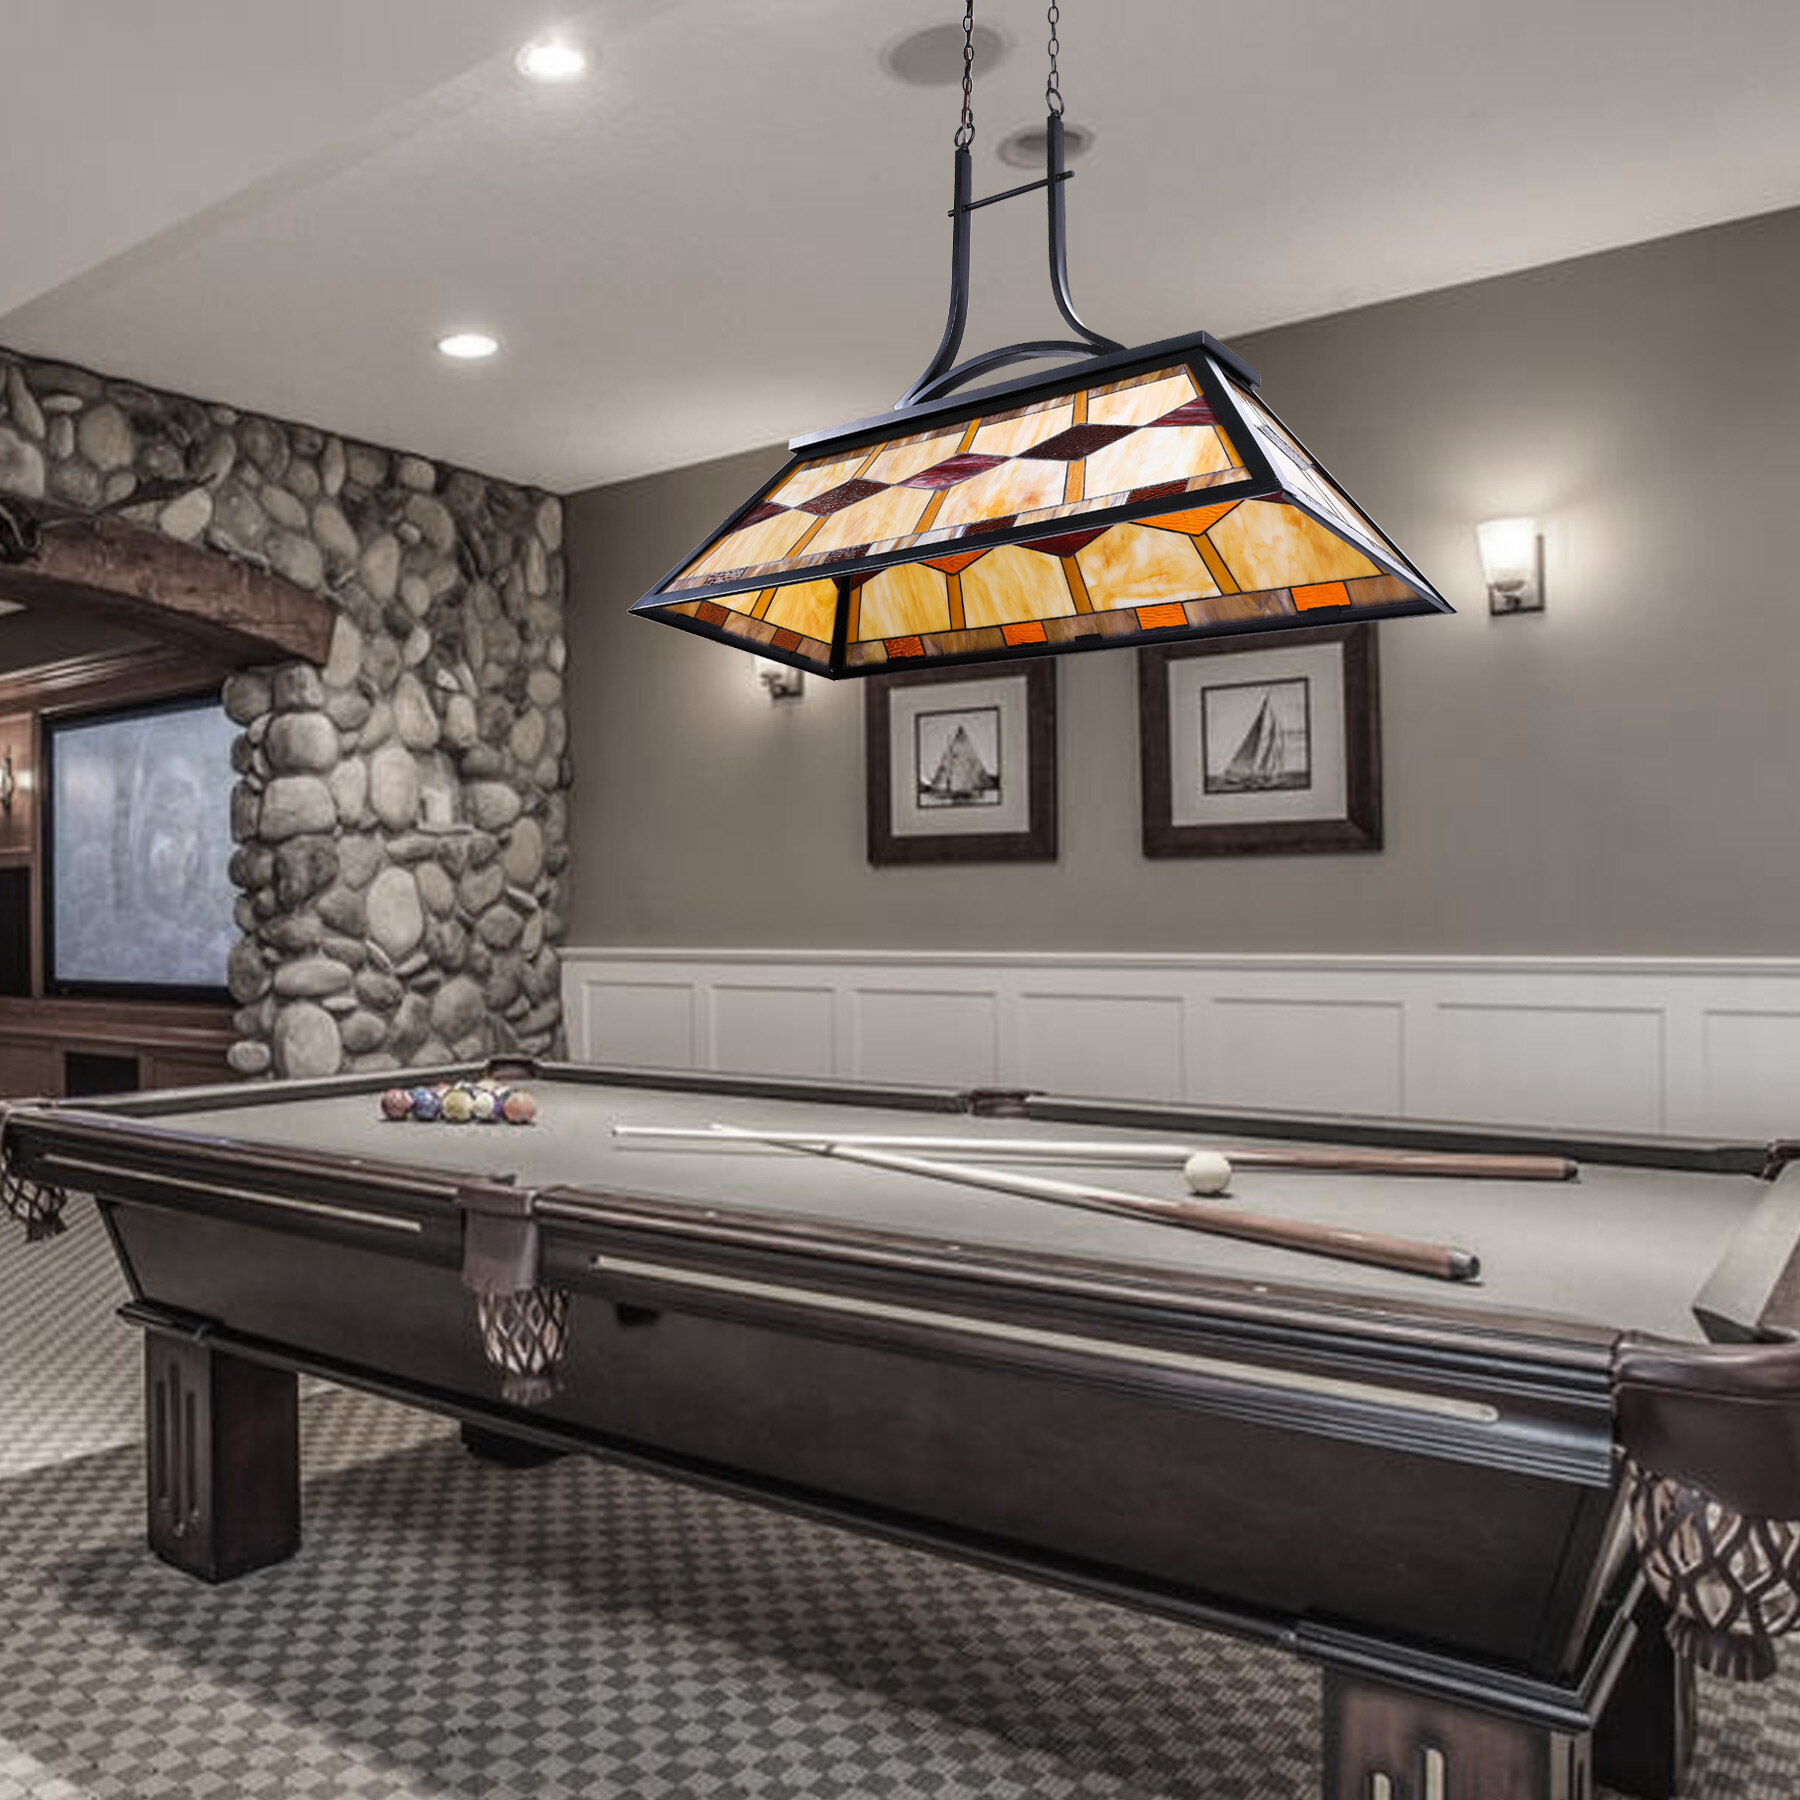 Linear Pool Table Lights Pendant Lighting You Ll Love In 2021 Wayfair